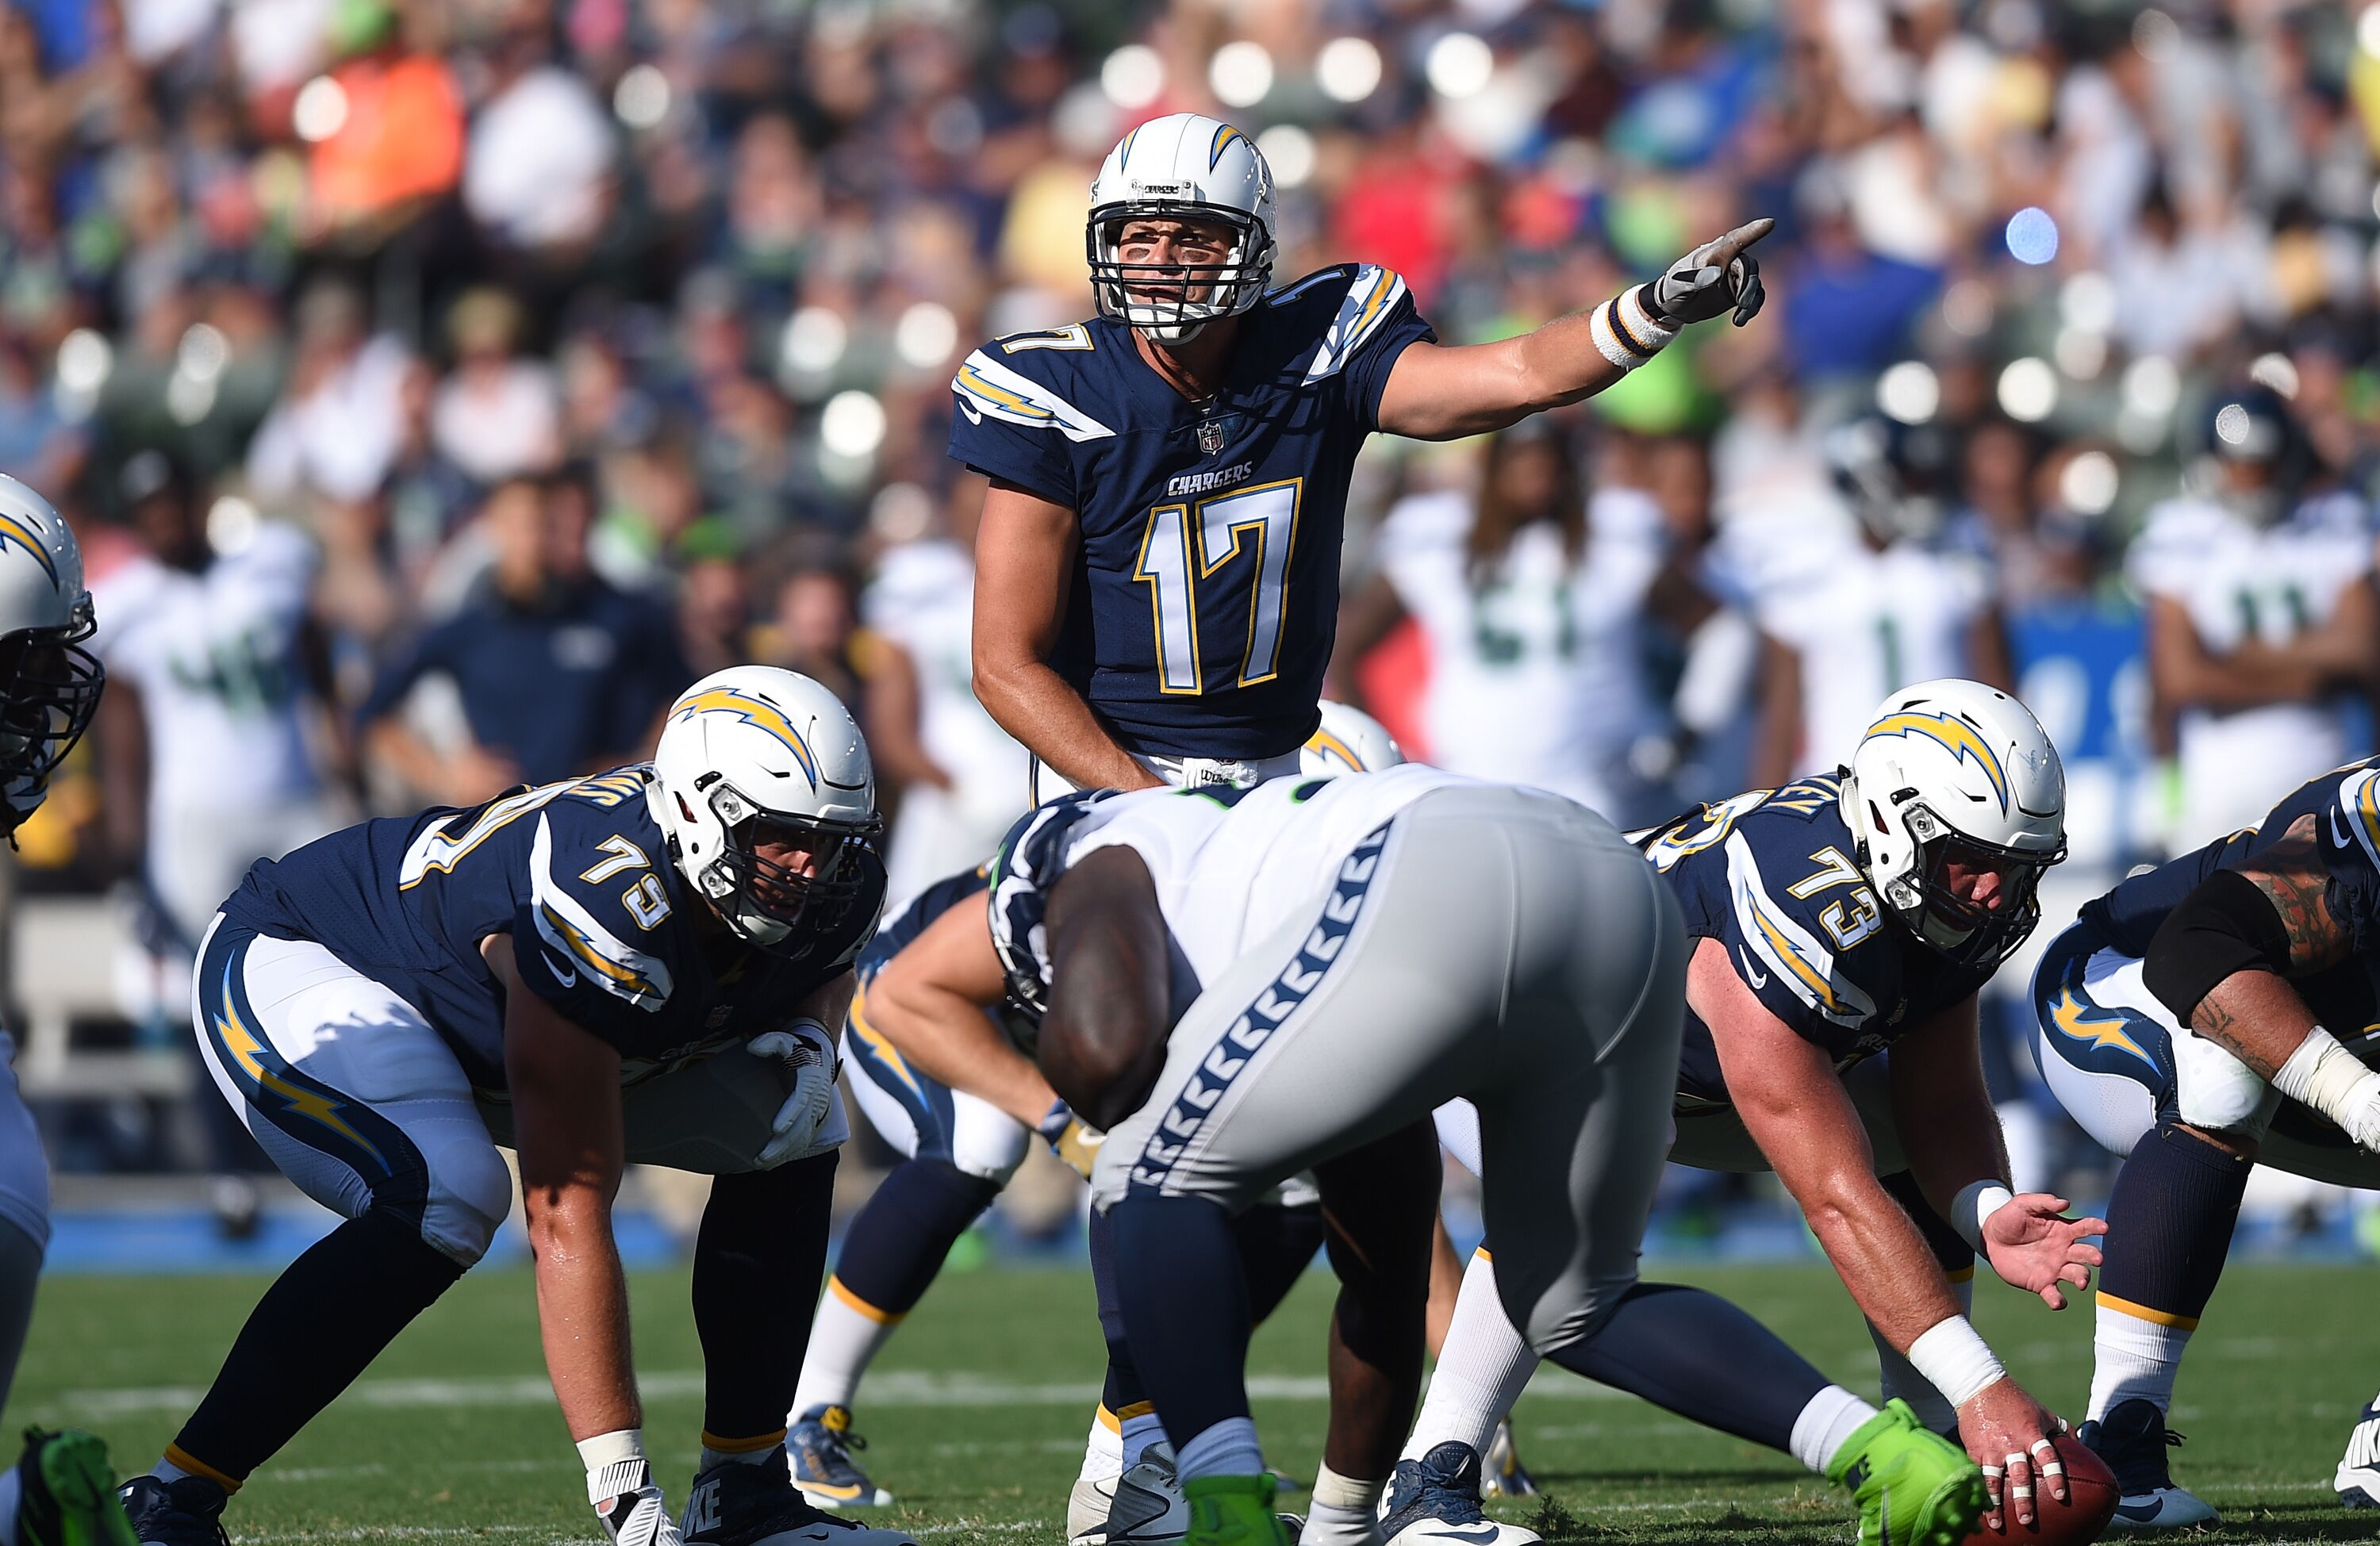 831171620-seattle-seahawks-v-los-angeles-chargers.jpg